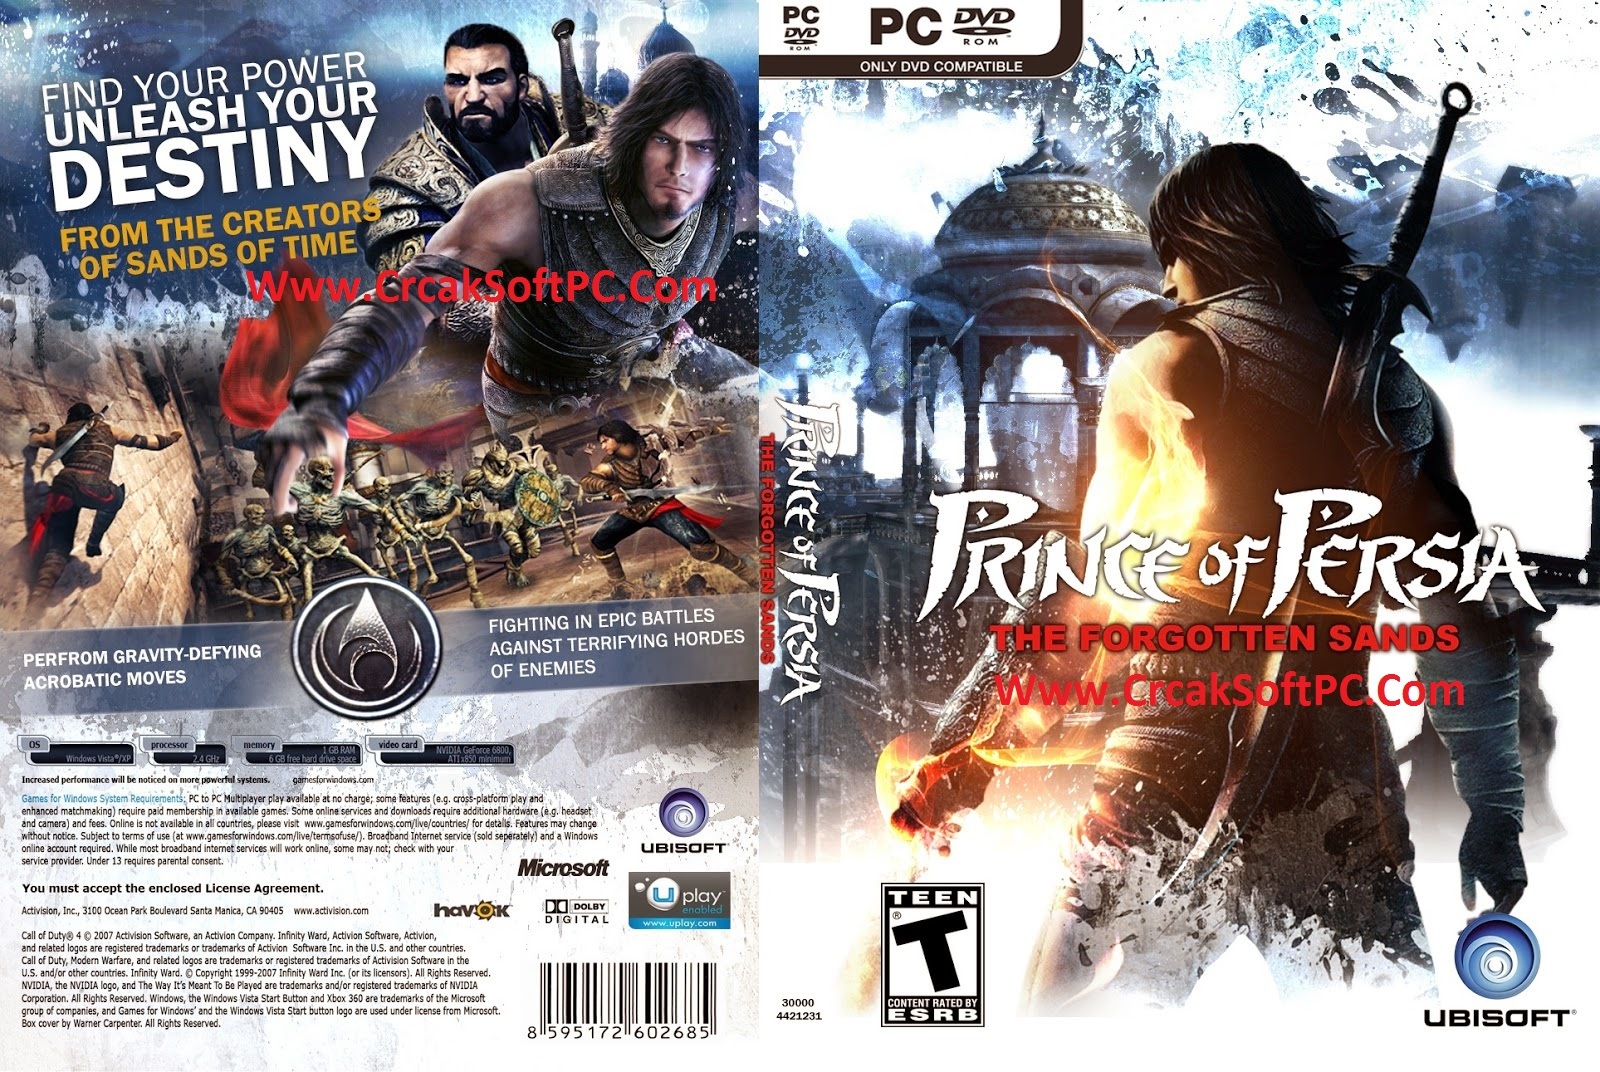 Download Prince Of Persia Forgotten Sands Generatorcamping S Blog